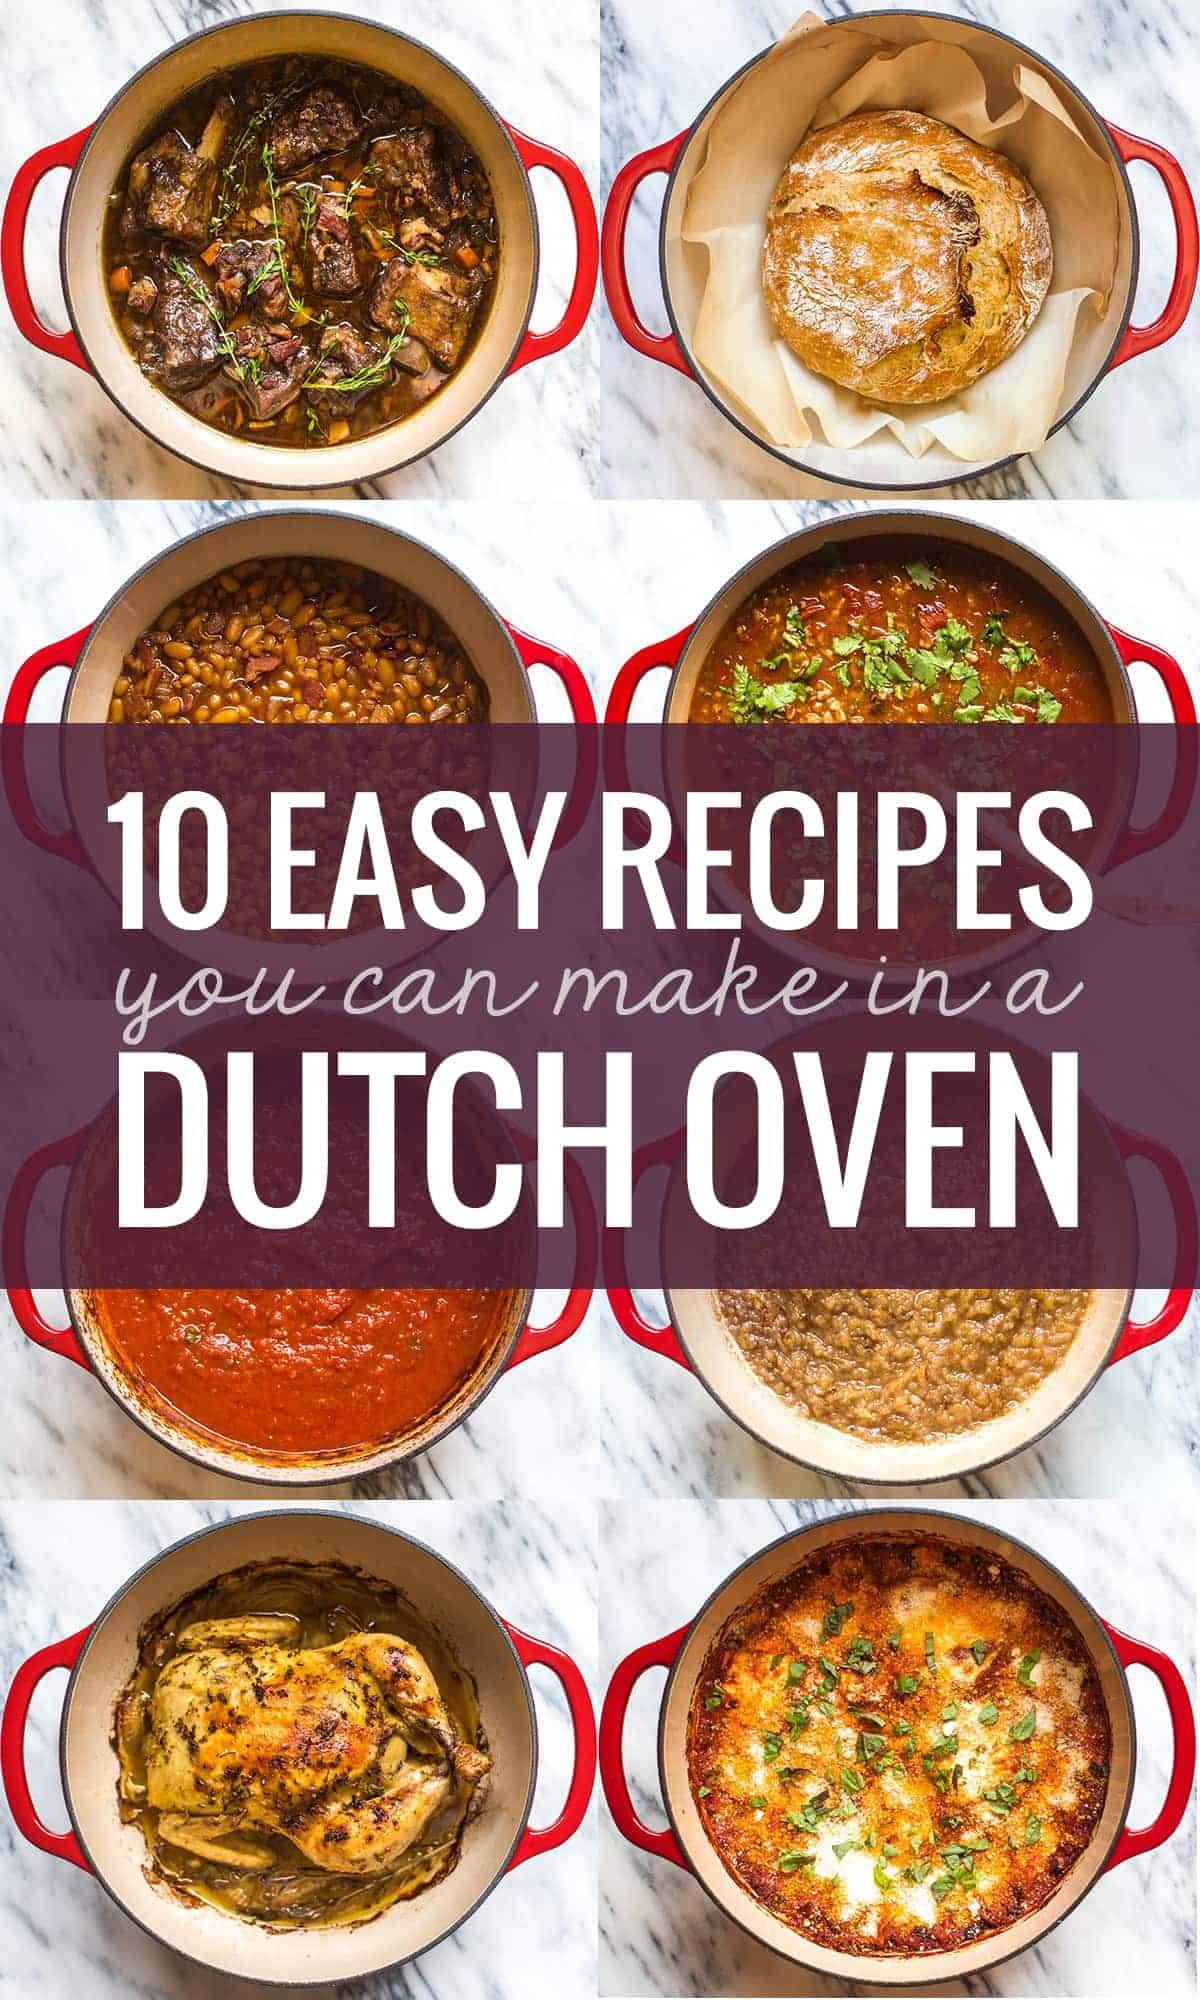 10 easy recipes you can make in a dutch oven pinch of yum 10 easy recipes you can make in a dutch oven forumfinder Choice Image